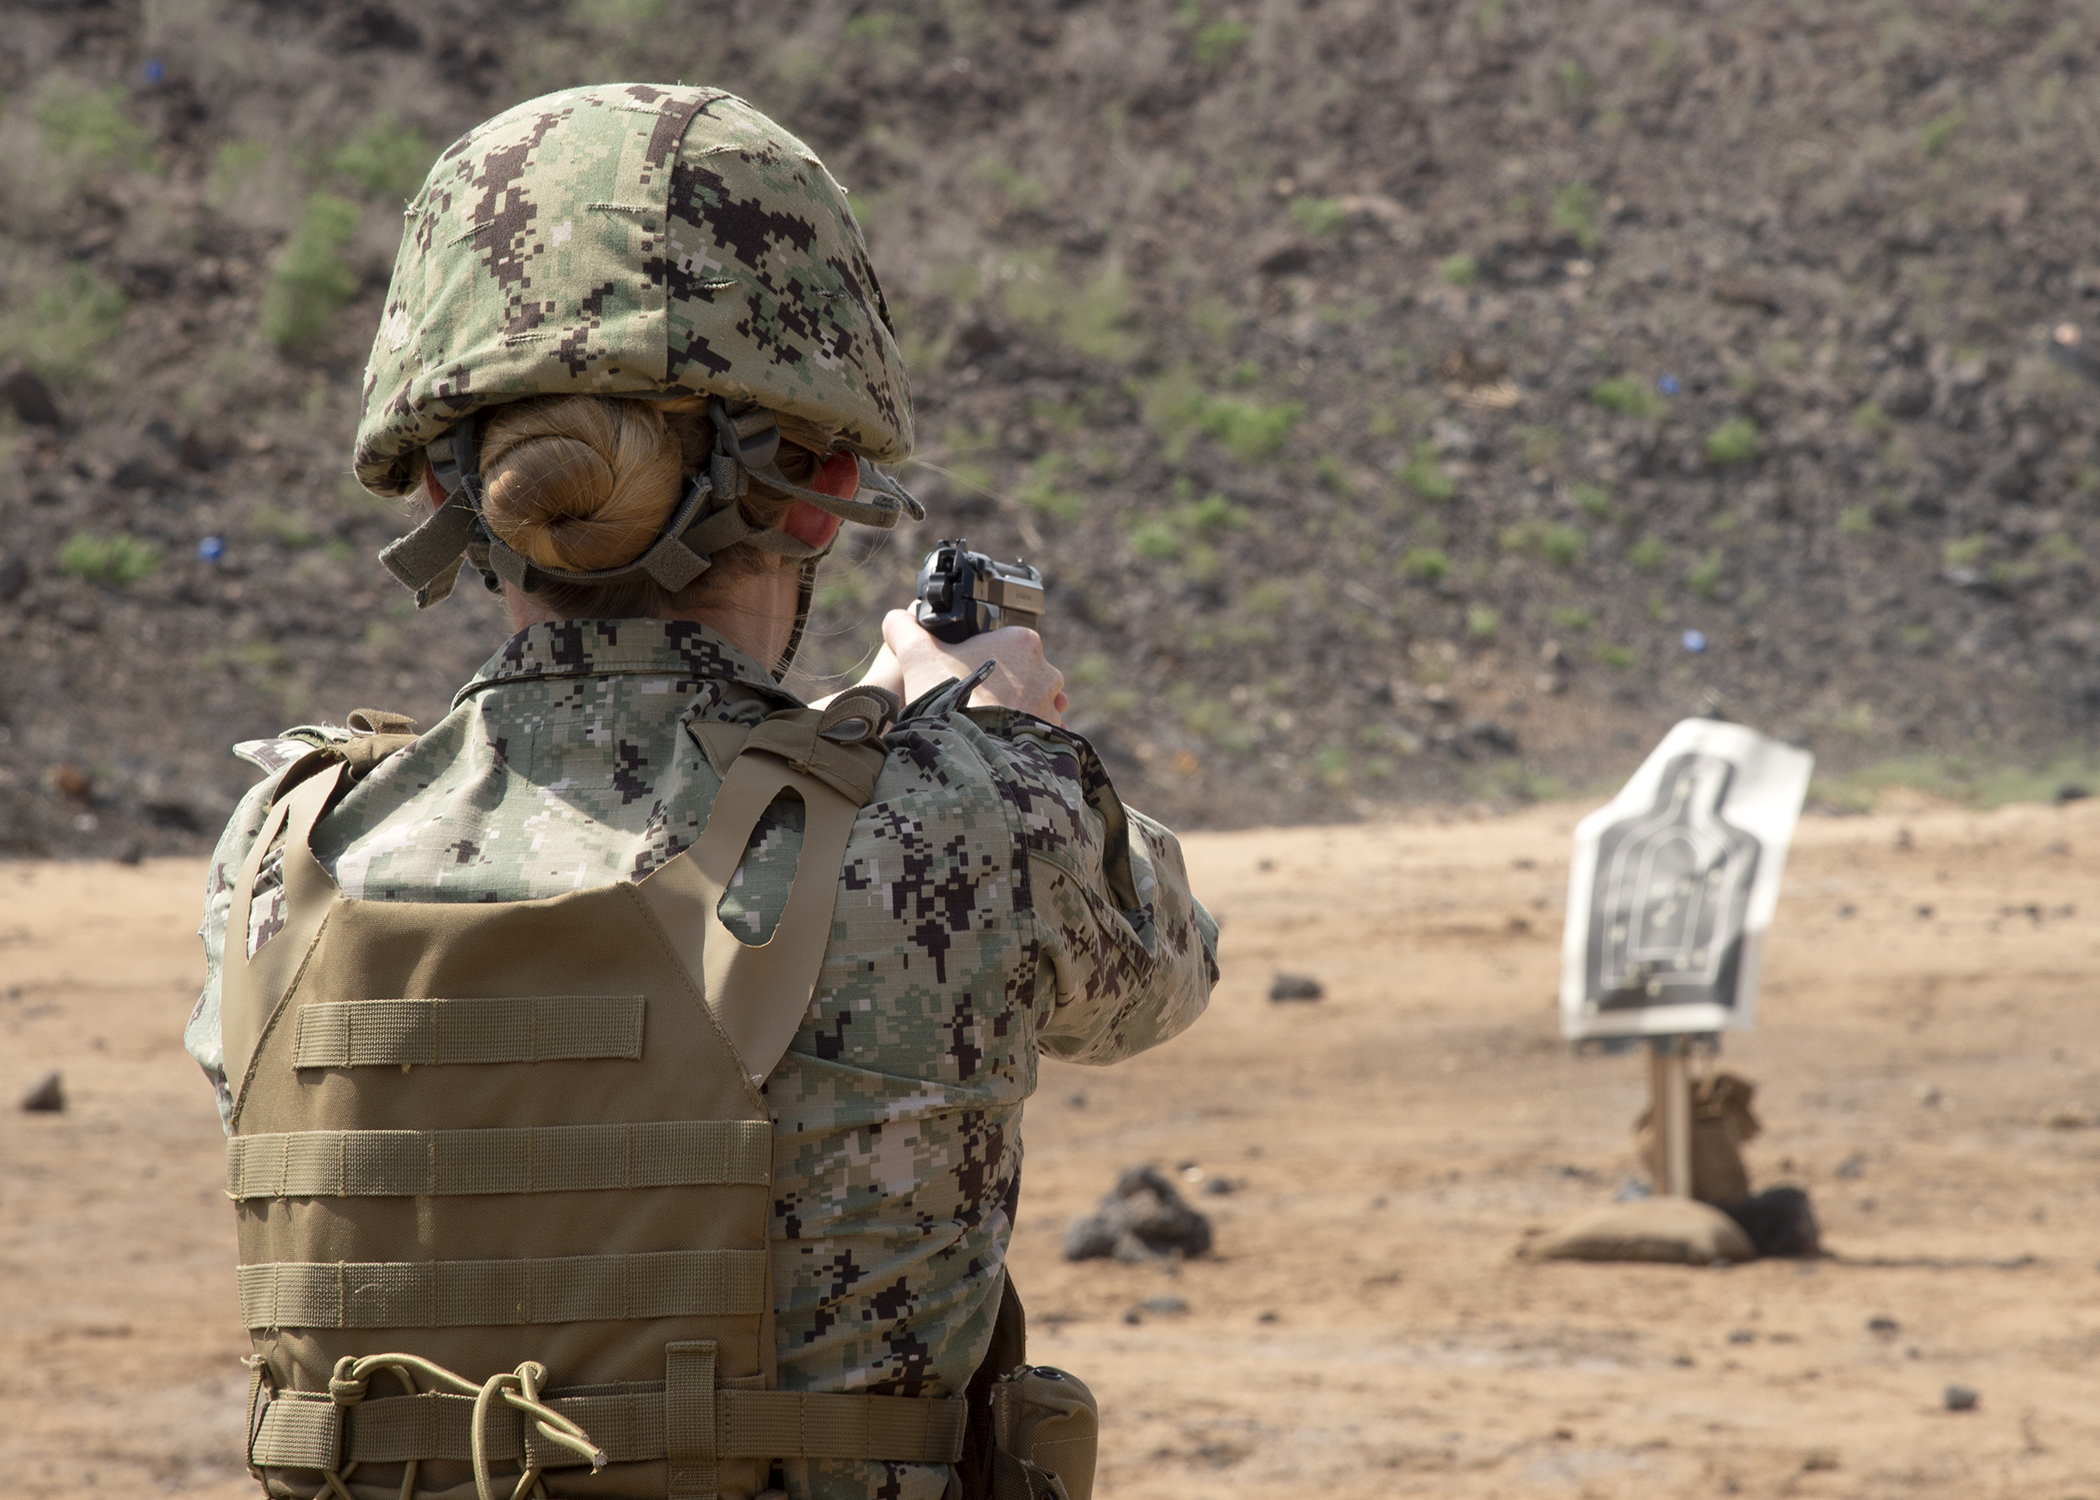 U.S. Navy Petty Officer 2nd Class Sarah Brandt, a master at arms assigned to Camp Lemonnier, Djibouti, fires an M-9 pistol during the marksmanship portion of the German Armed Forces Badge for military proficiency, at the Arta Range Complex, Djibouti, June 12, 2019. Competing for the badge offered a unique opportunity for joint personnel from Combined Joint Task Force-Horn of Africa and Camp Lemonnier, and also works as an information exchange between the U.S. and German militaries. (U.S. Navy photo by Mass Communication Specialist 1st Class Nick Scott)